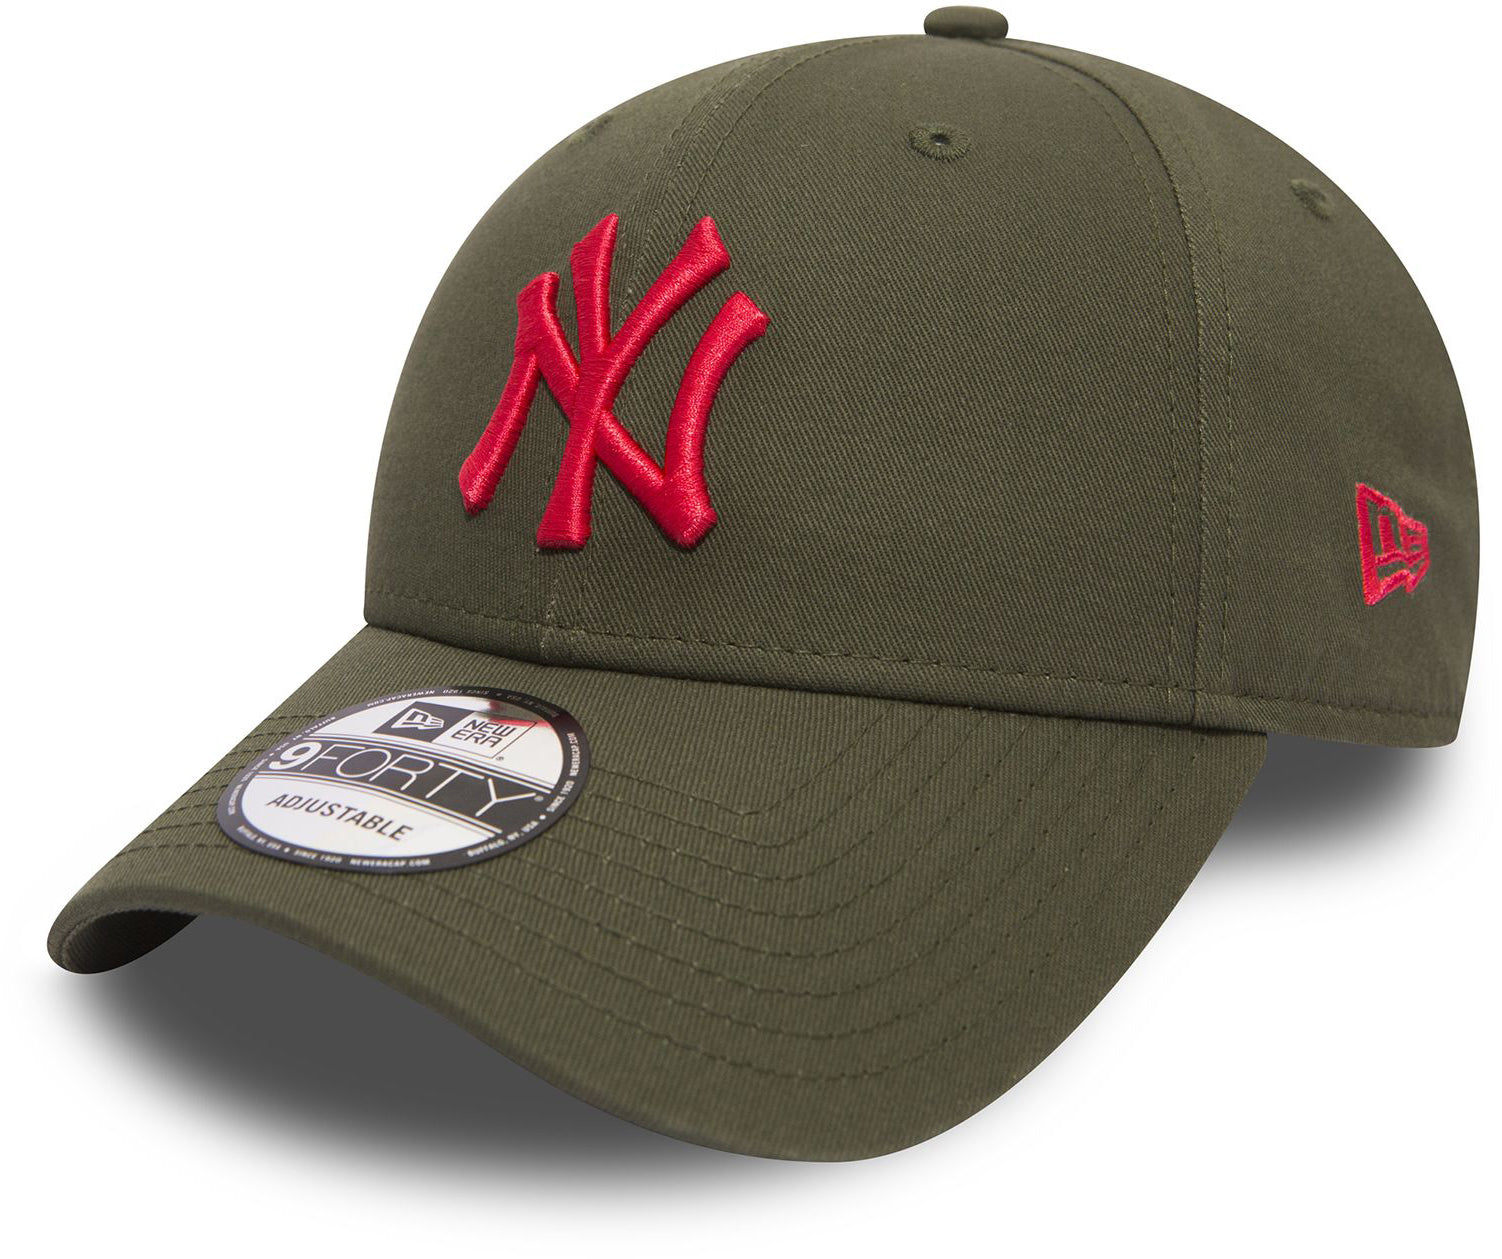 5eb72106c7d0ae NY Yankees New Era 940 League Essential Olive/Red Baseball Cap – lovemycap